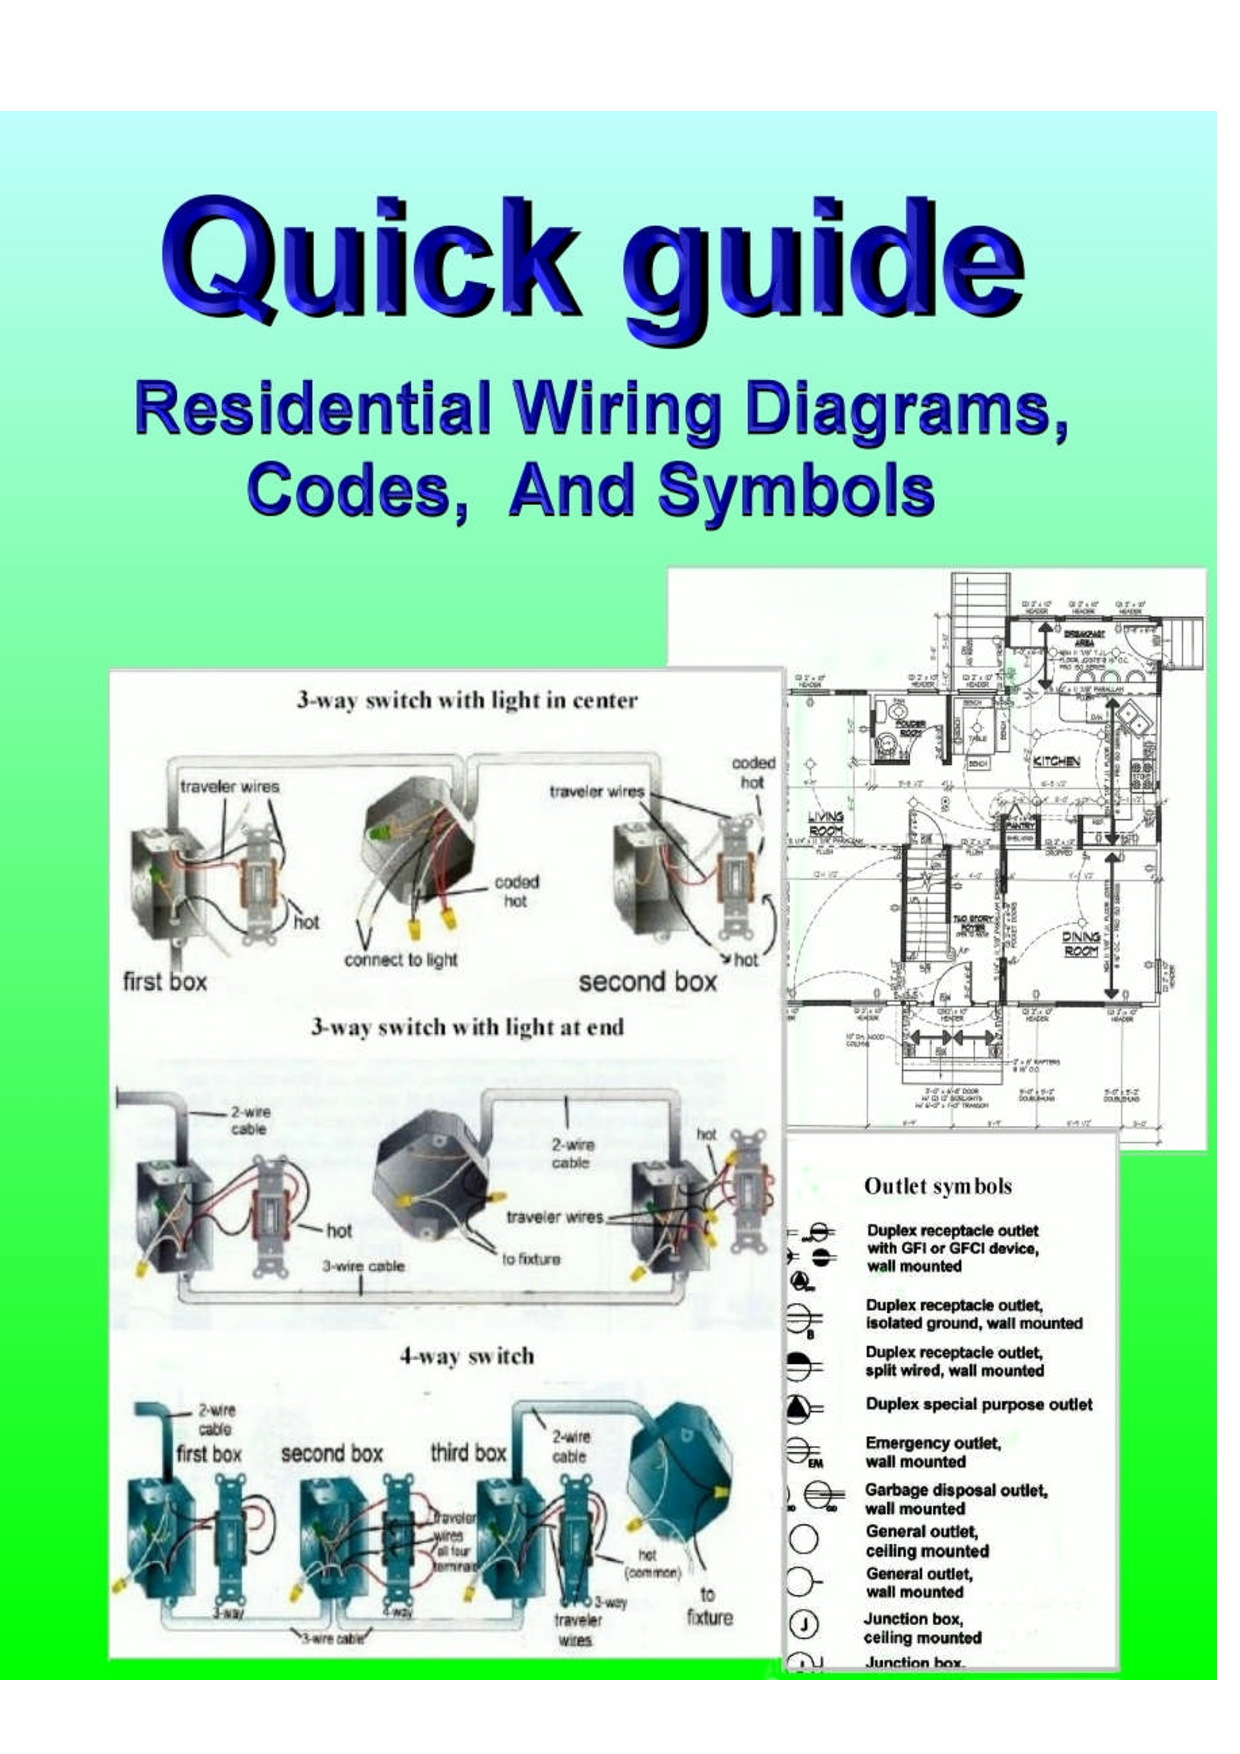 Home Electrical Wiring Diagrams By Housebuilder112 Home Electrical Wiring Residential Electrical Electrical Wiring